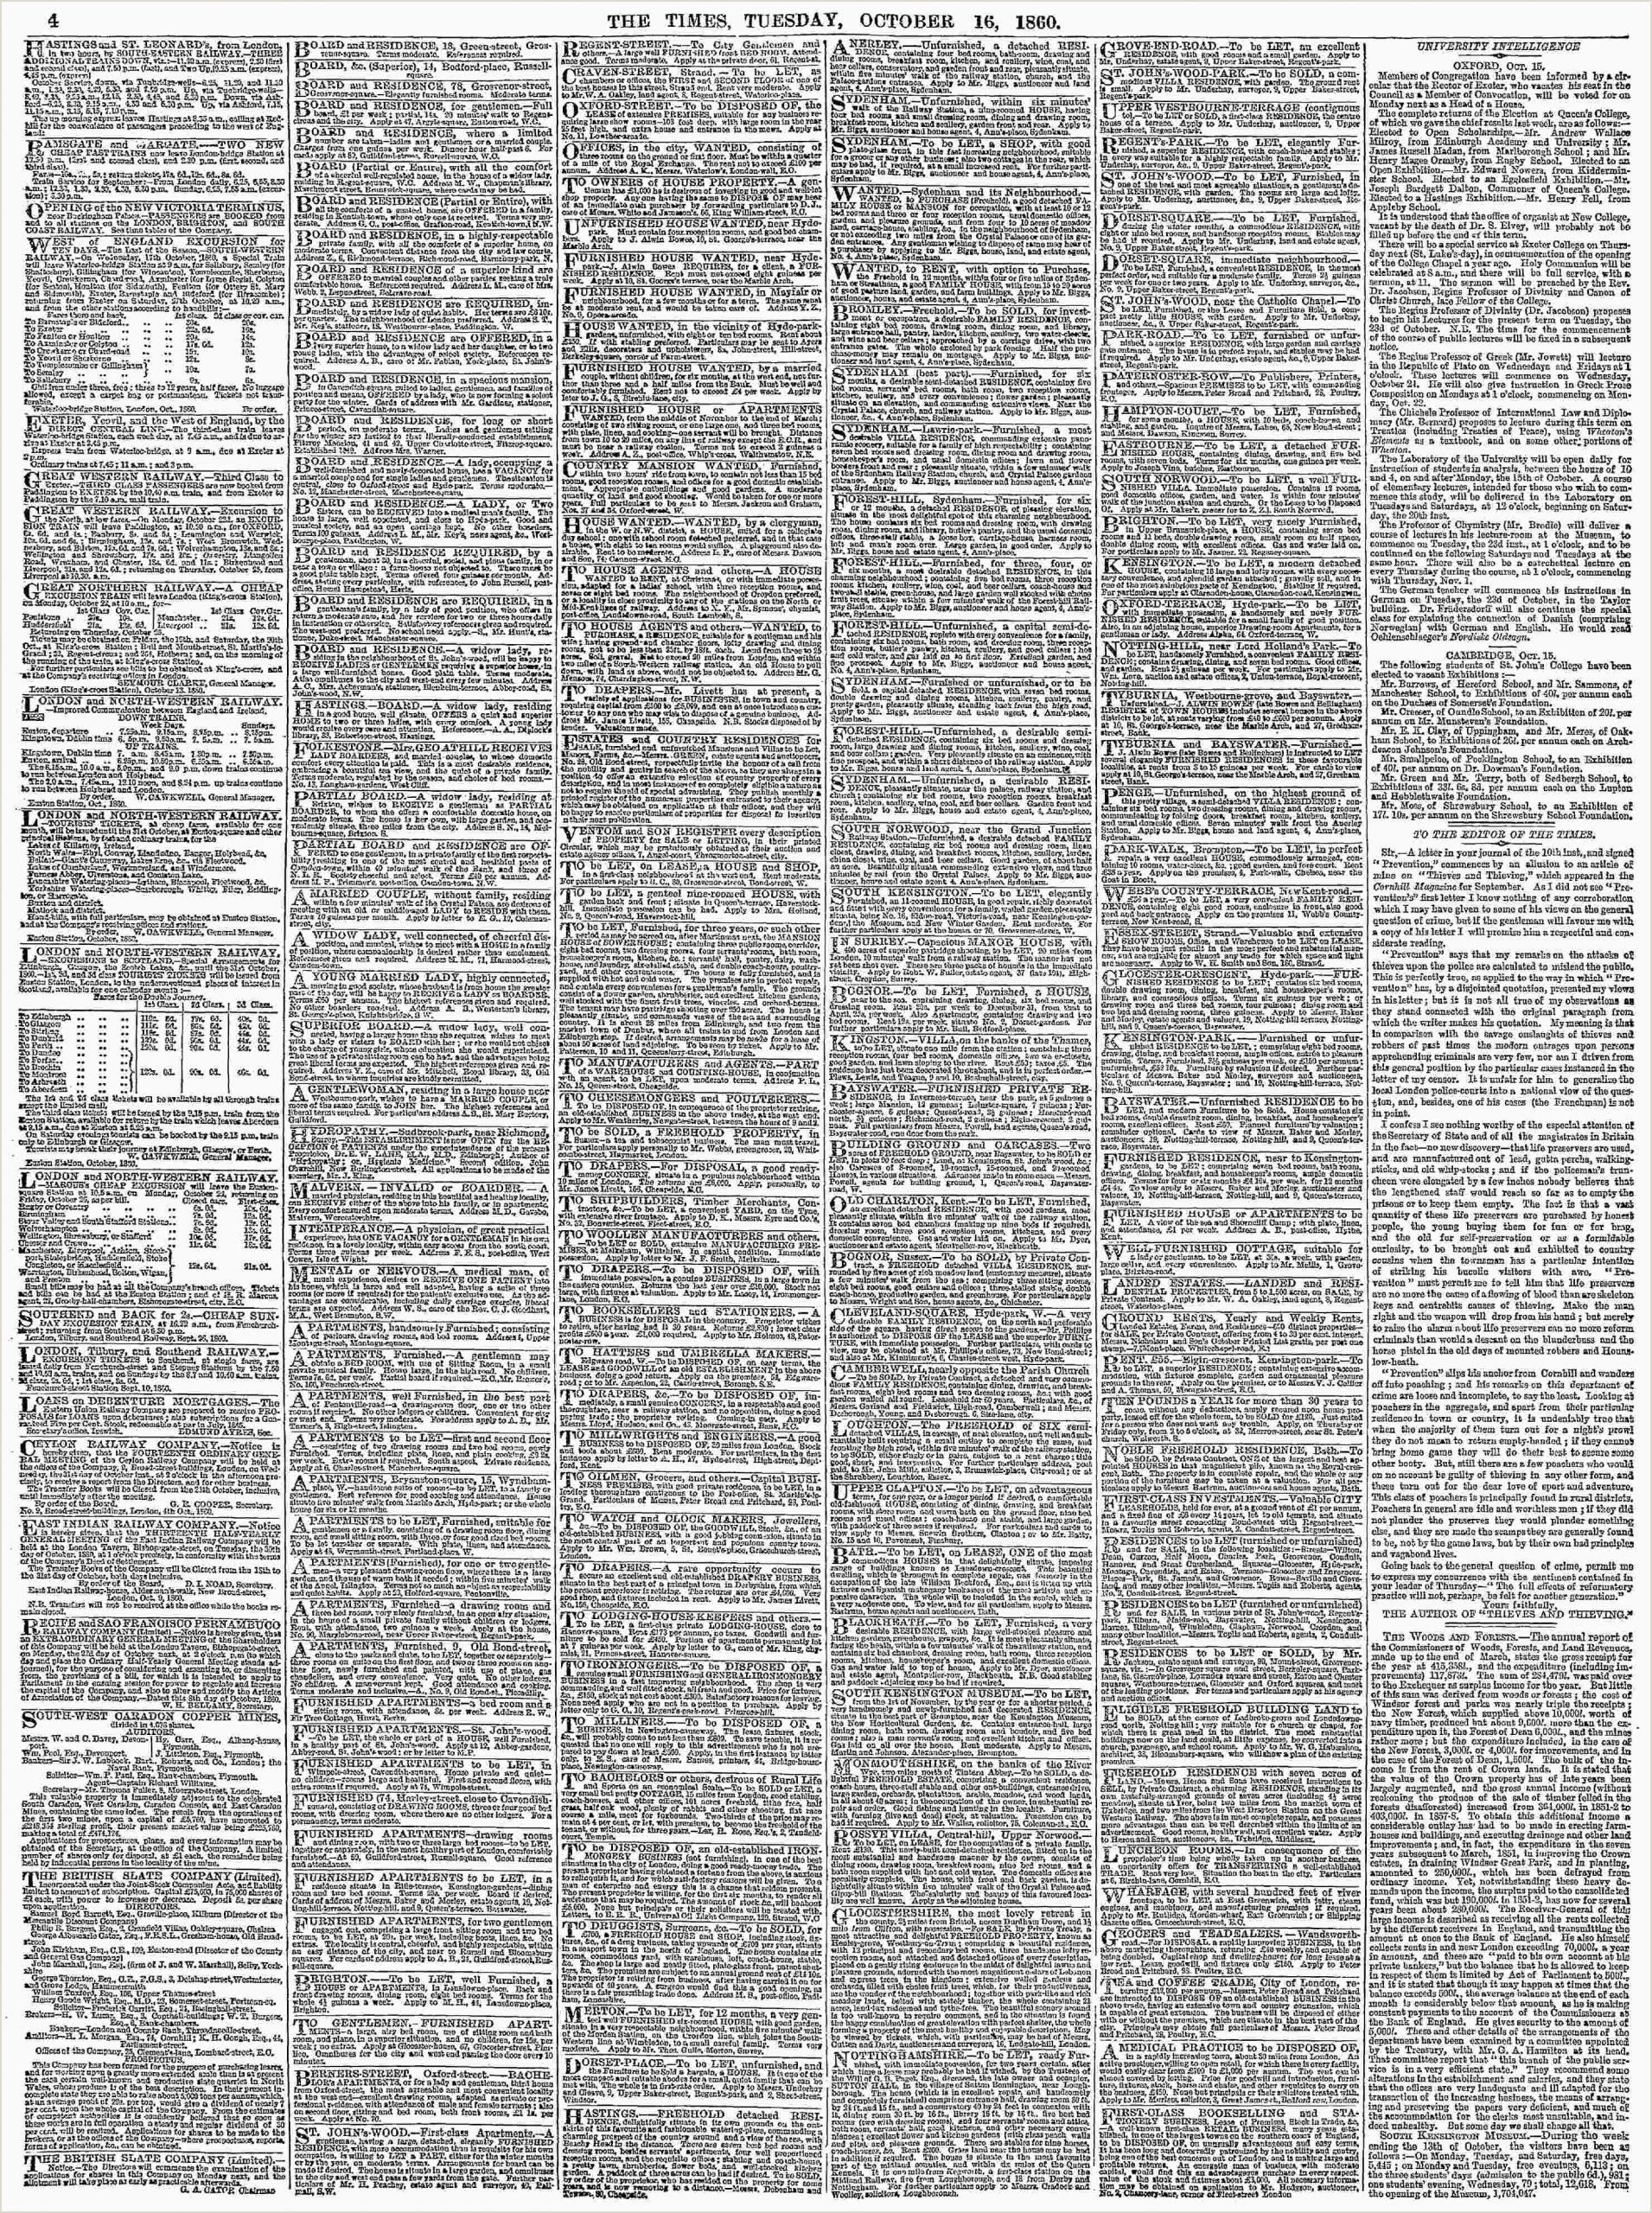 Business Crds Archive Page Viewer October 16 1860